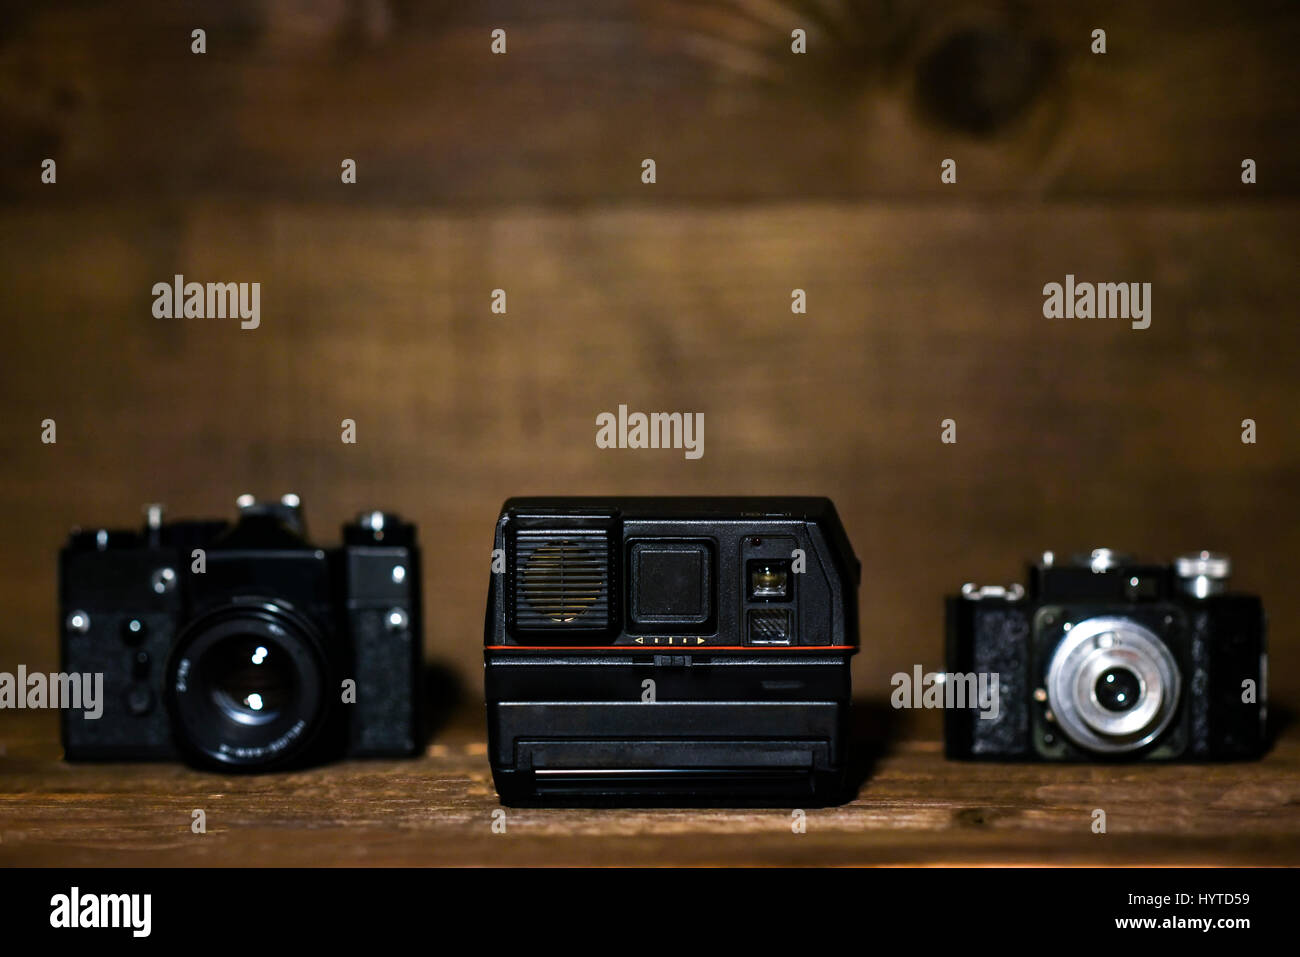 Olda cameras on a wooden background with copy space Stock Photo